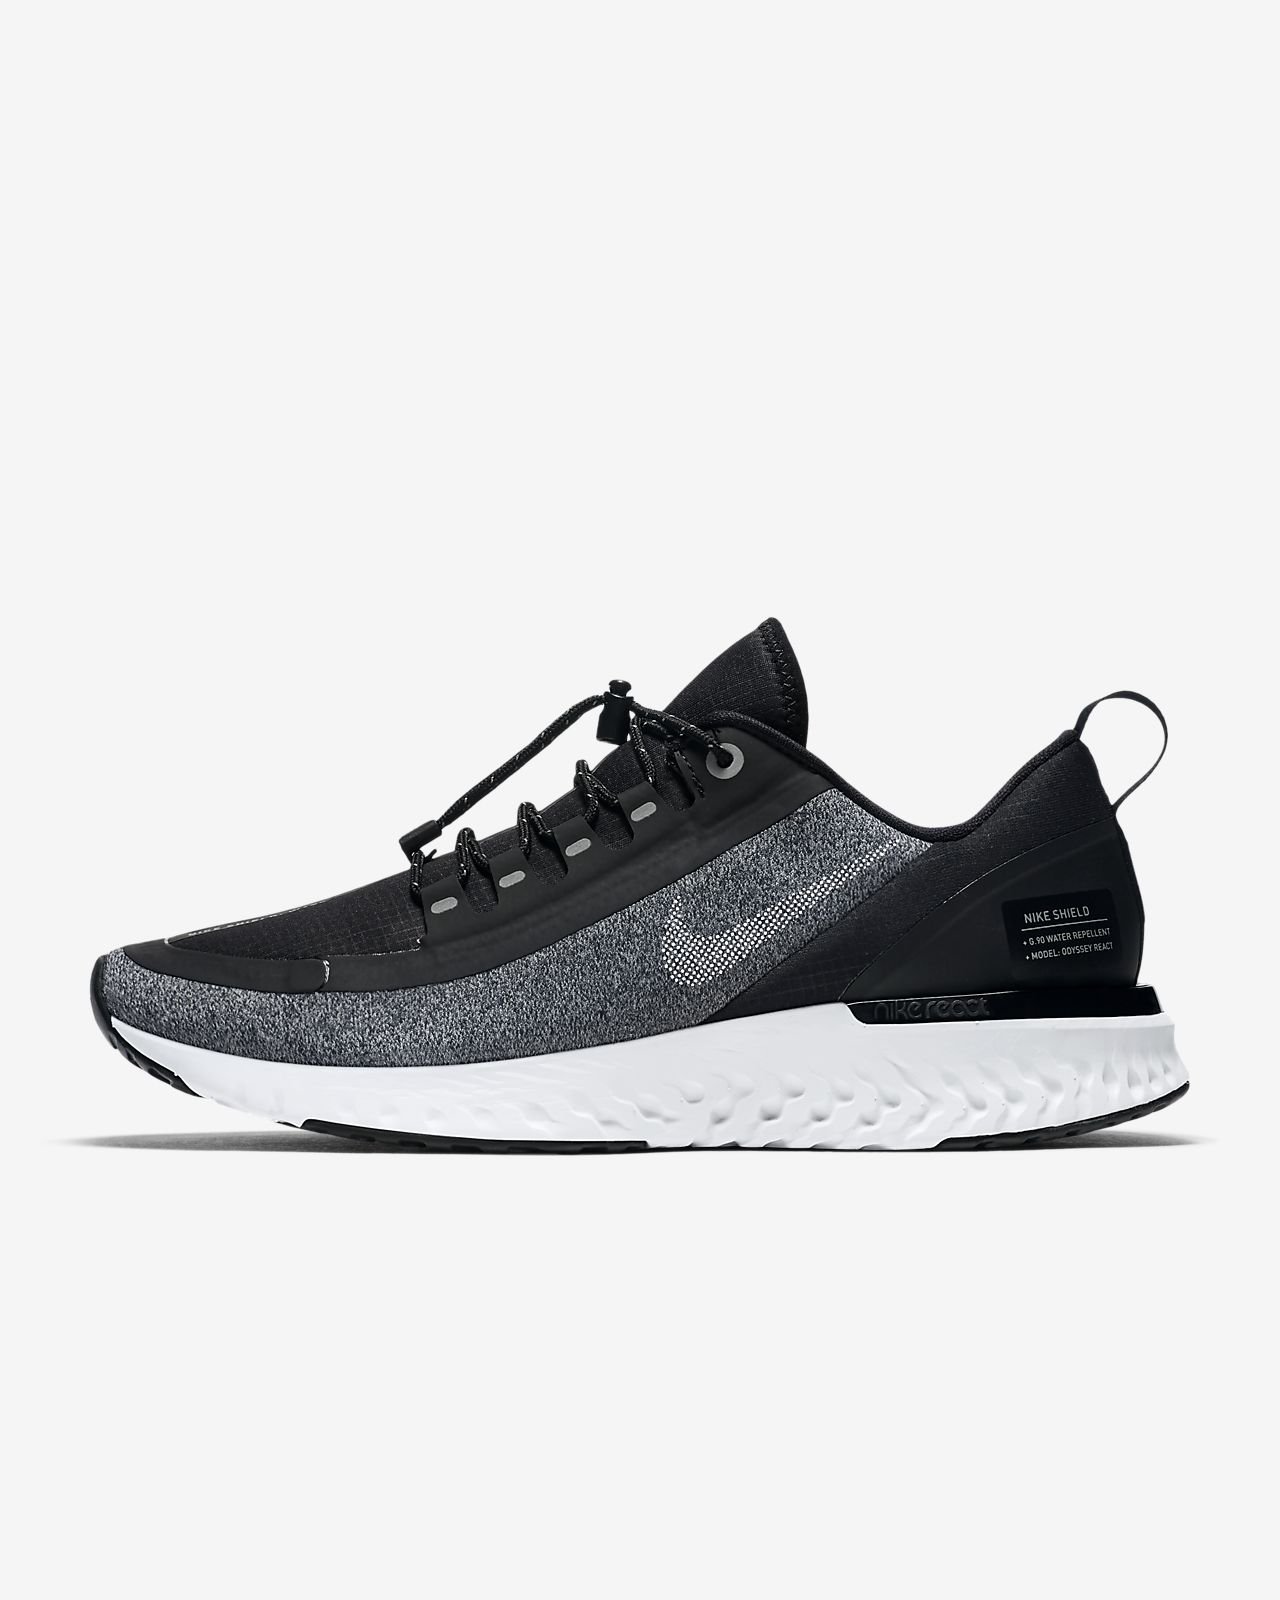 Nike Odyssey React Shield 女子跑步鞋